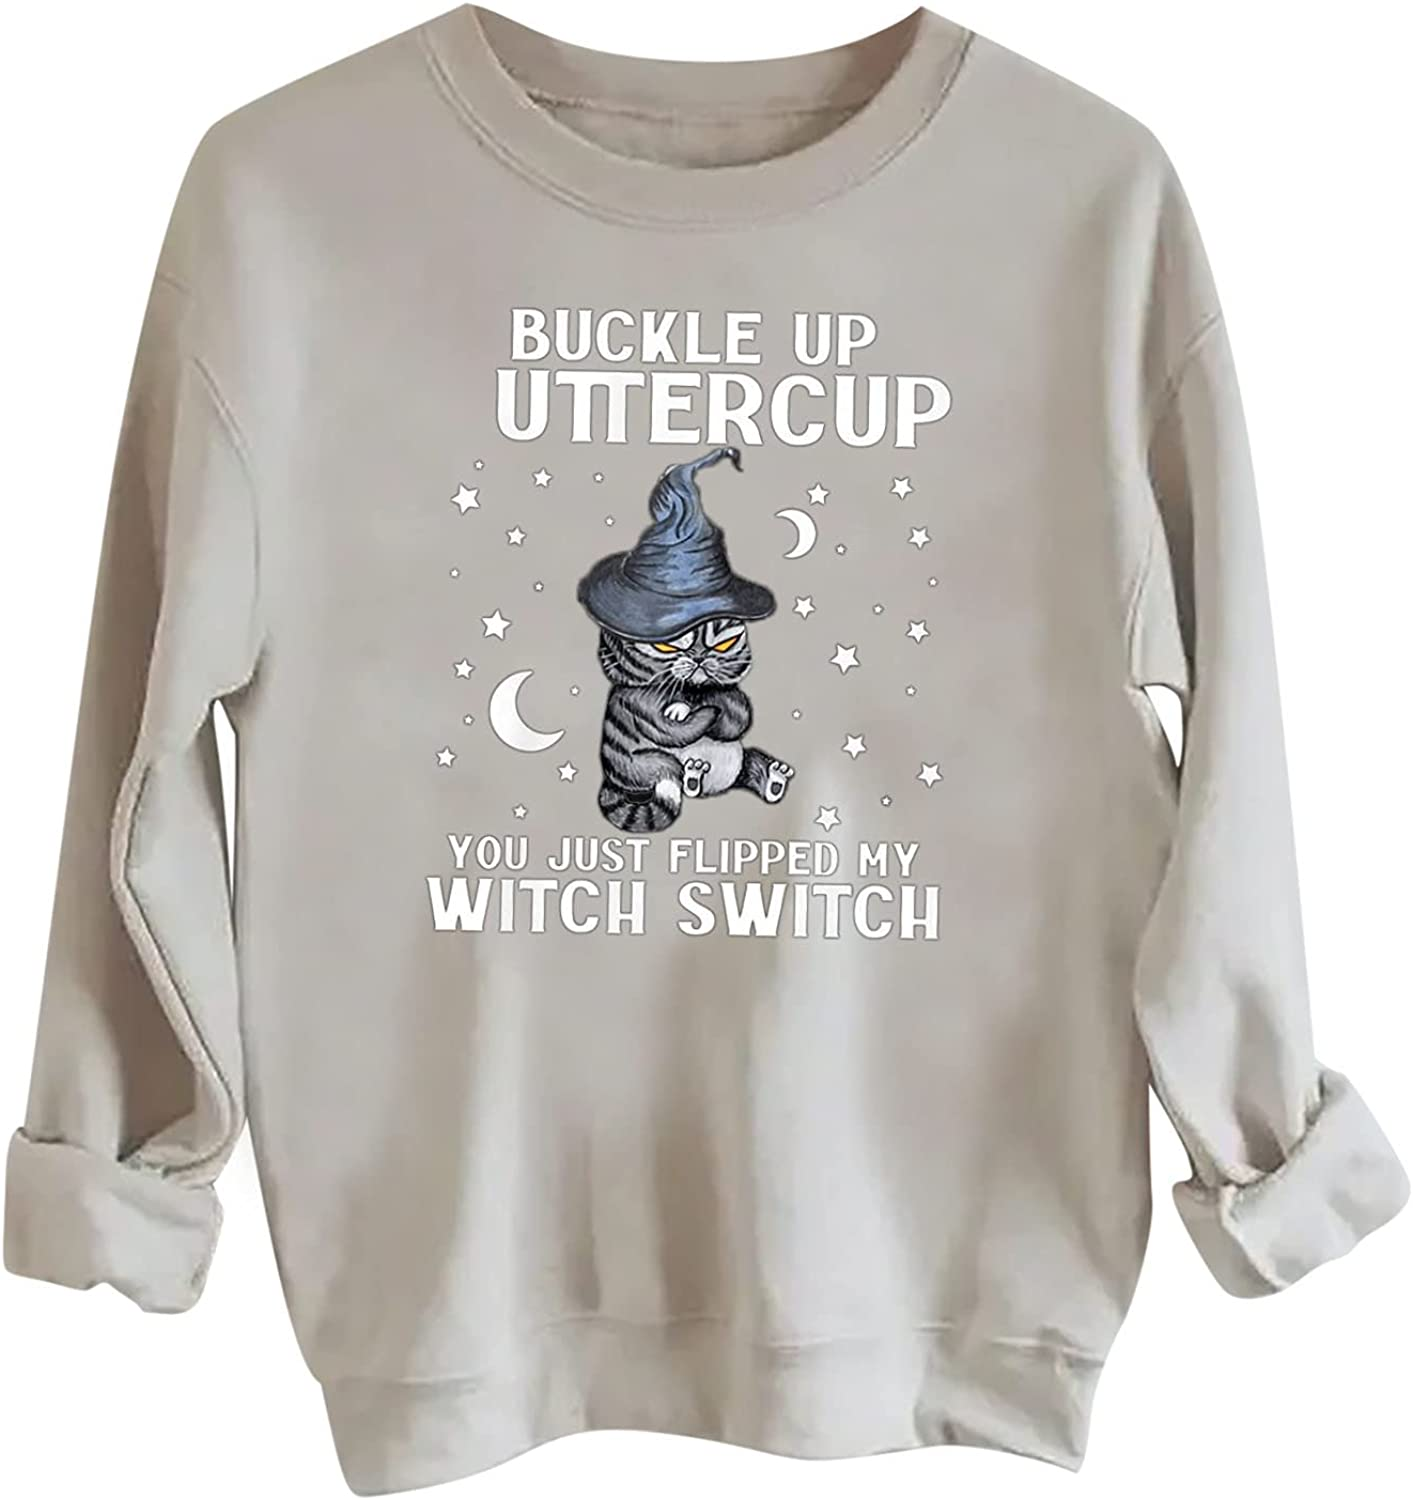 Women Halloween Sweatshirts Plus Size Fall Tops Crewneck Happy Witch Long Sleeve Pullover Shirts Casual Tunic Blouse